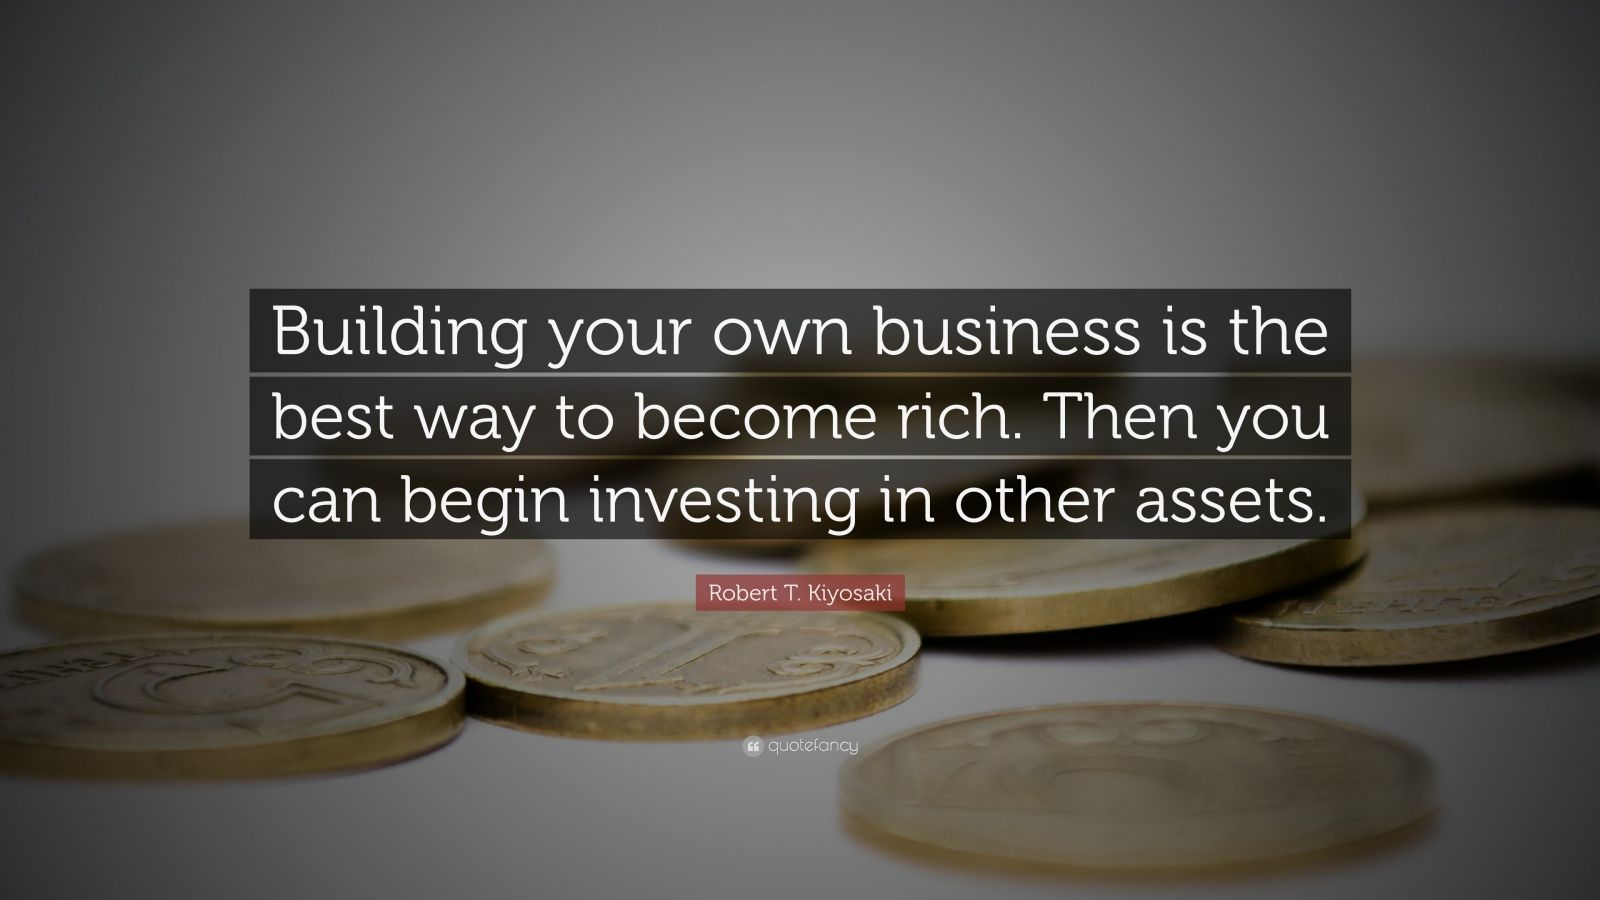 """Robert T. Kiyosaki Quote: """"Building your own business is the best way to become rich. Then you can begin investing in other assets."""""""